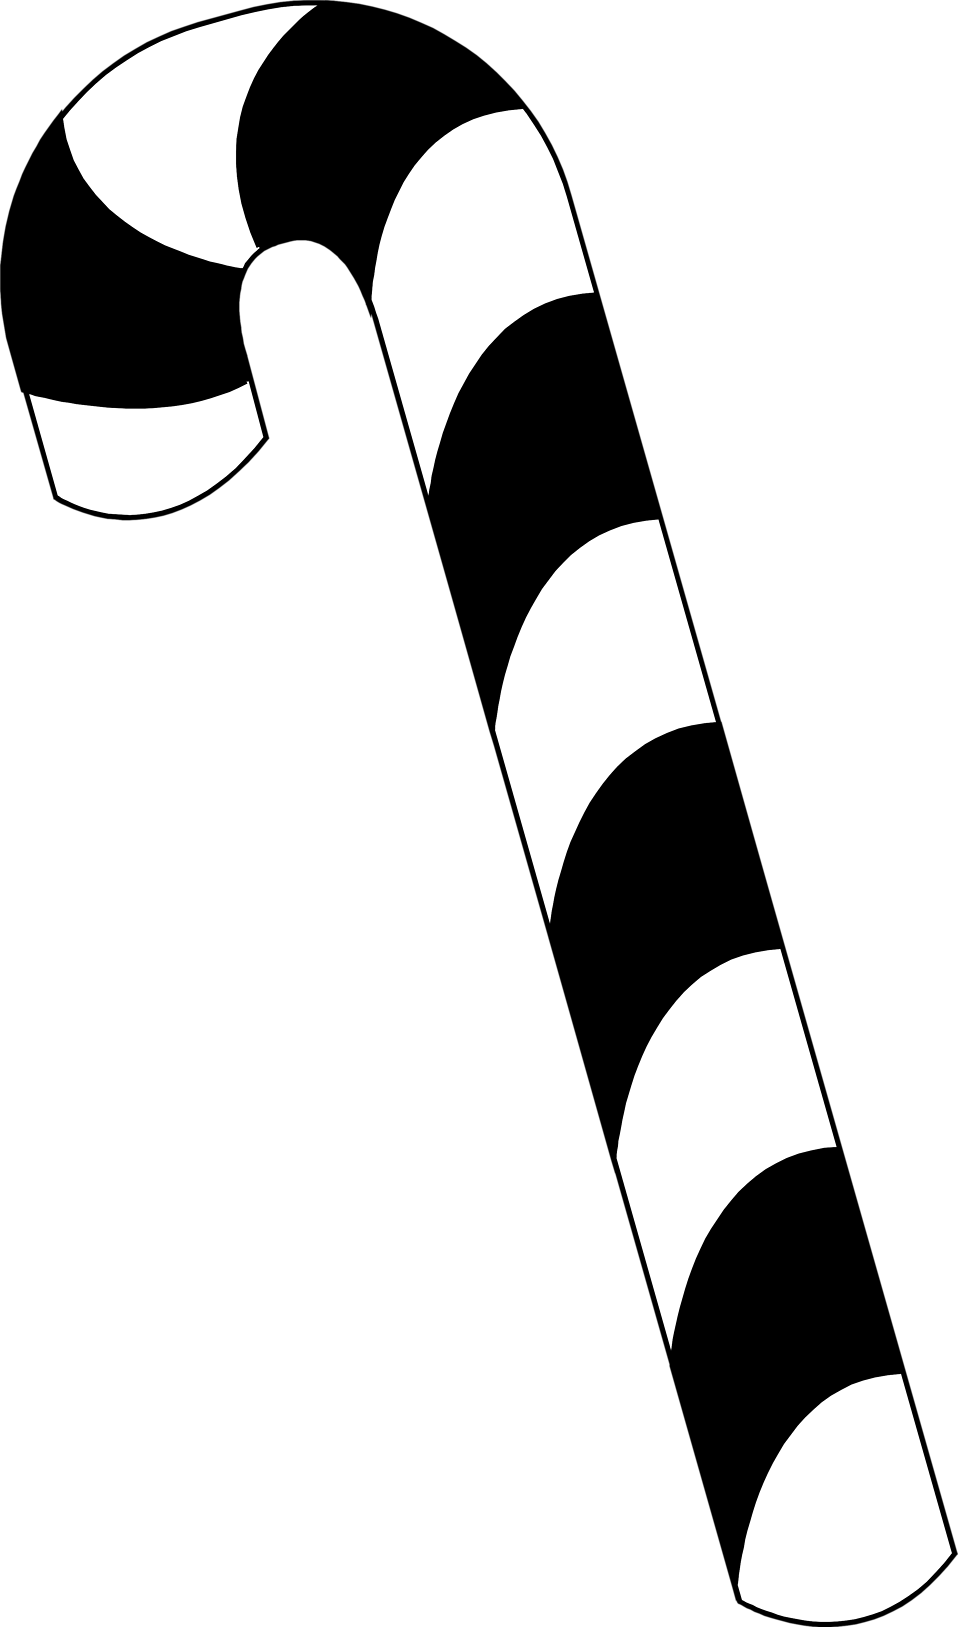 Candy Cane Clip Art Black And White Keywords: black and white,